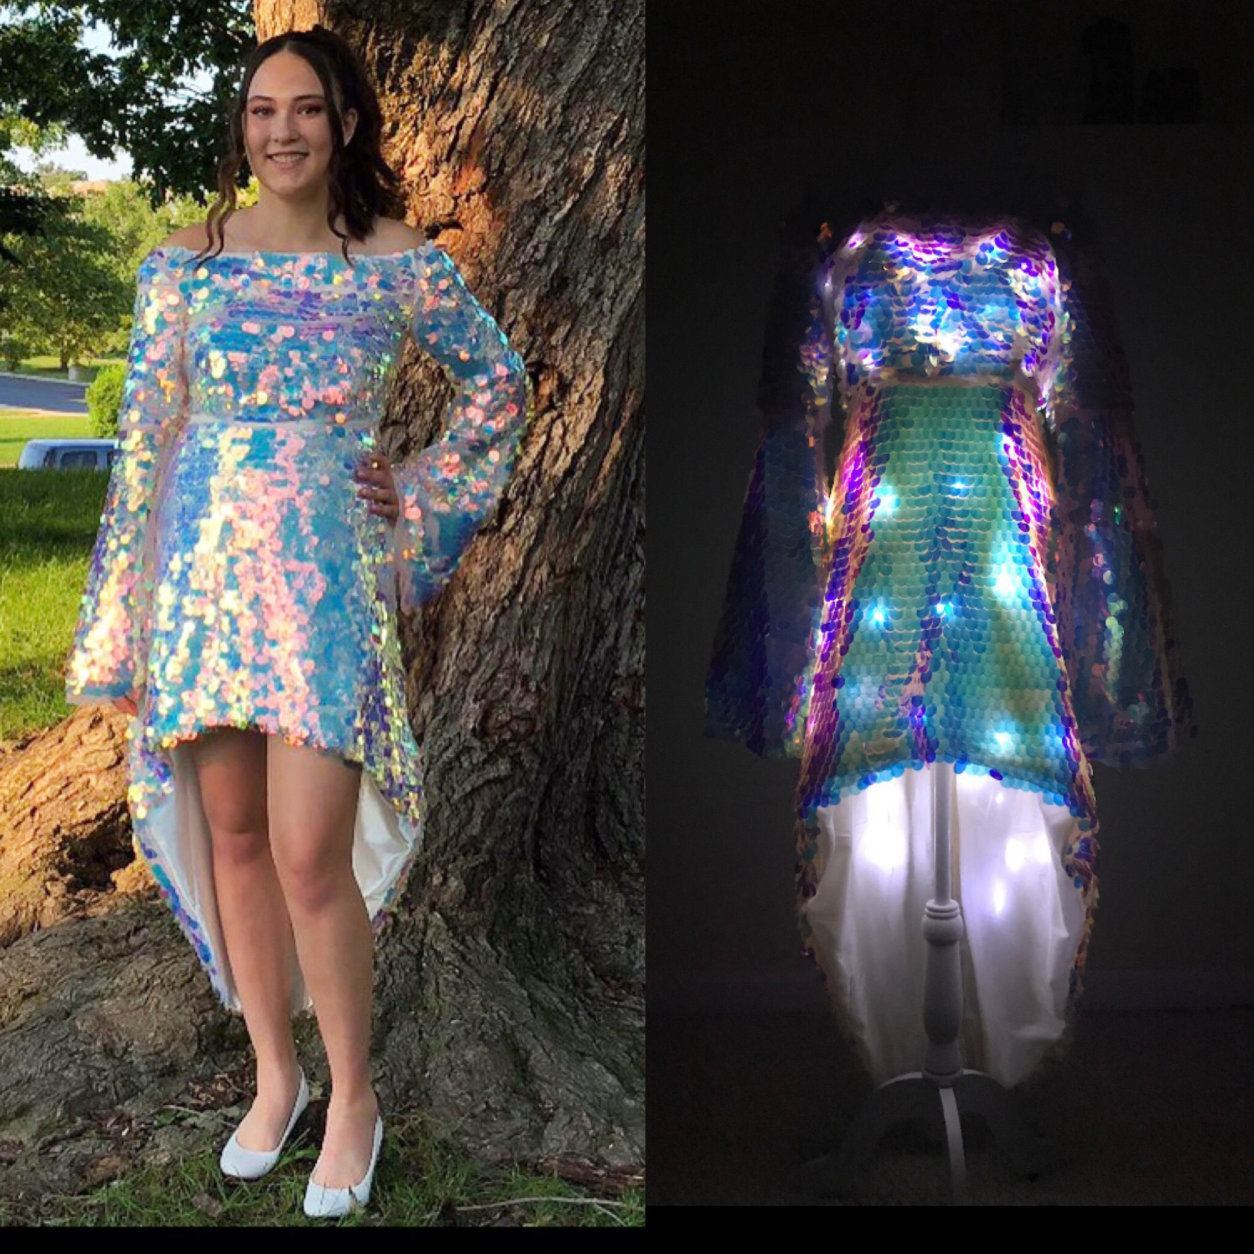 """Christina works with other materials, of course. This dress was made with sequin fabric, which added shine and sparkle. """"The dress had fairy lights sewn into the dress with a remote control that could easily light up for that 'wow!'"""" Mellott said. (Courtesy Nicole Mellott)"""